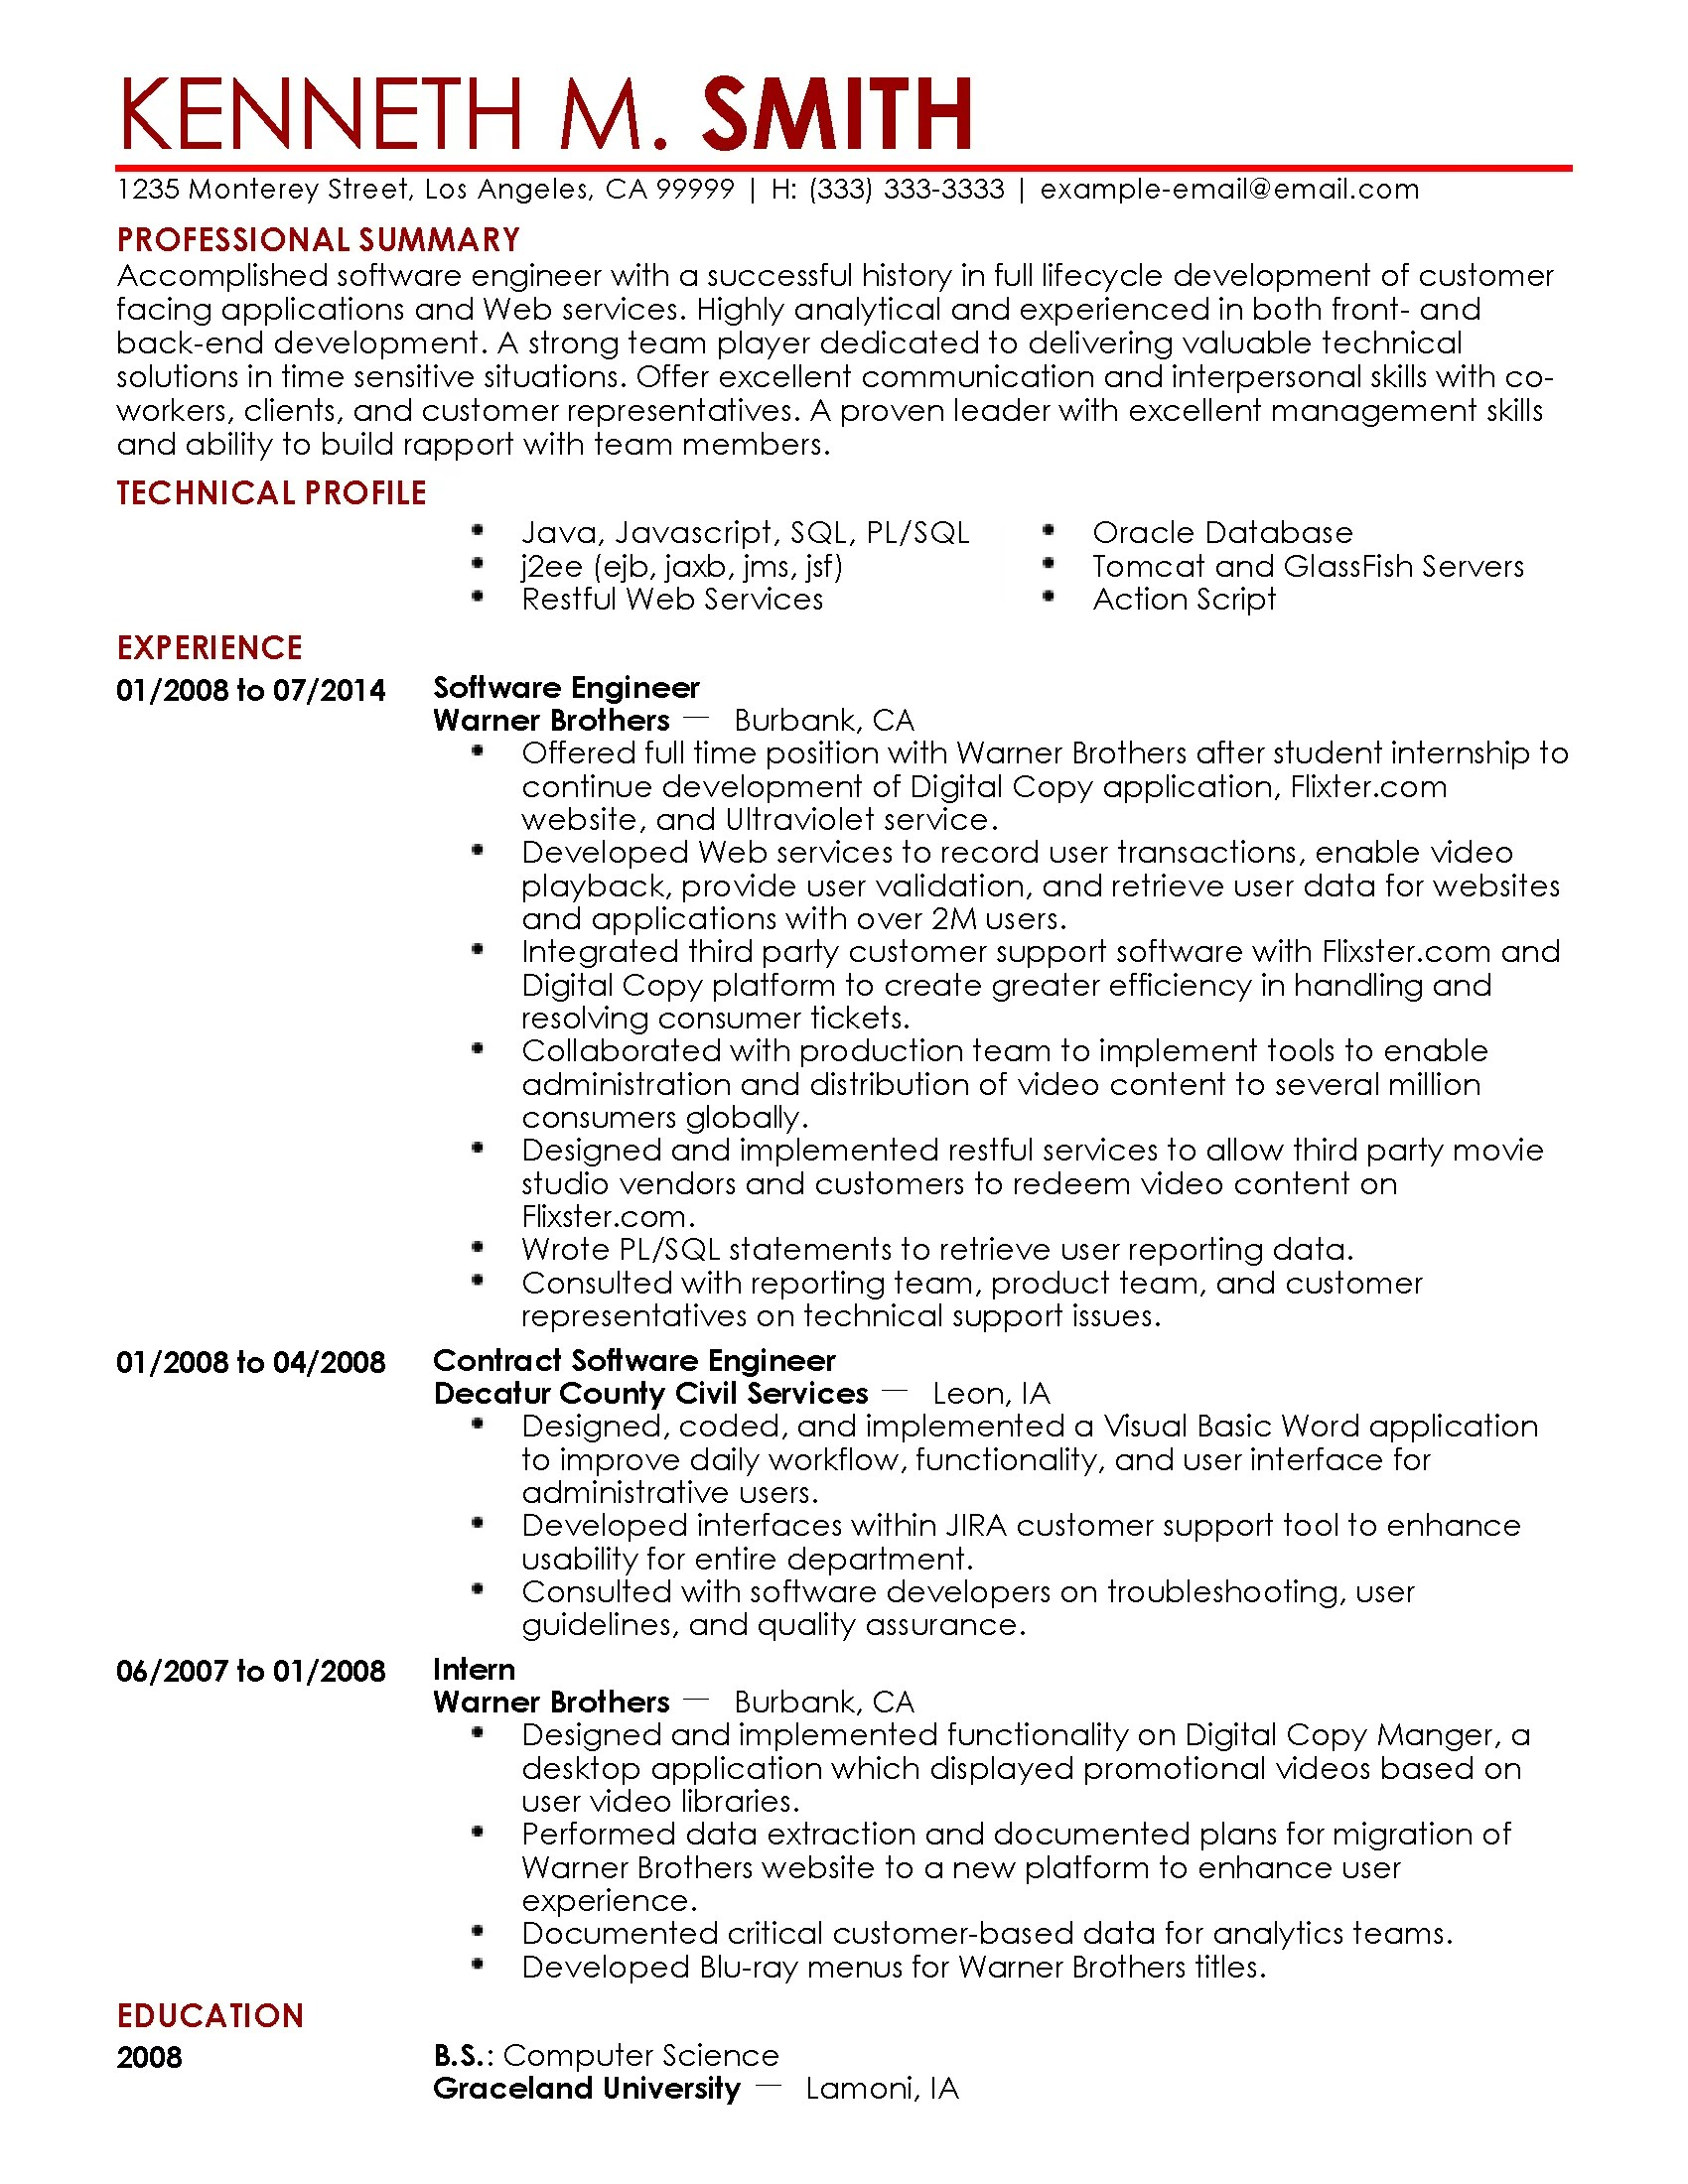 Software Professional Resume Samples What Are Some Good Topics For A College Admissions Essay